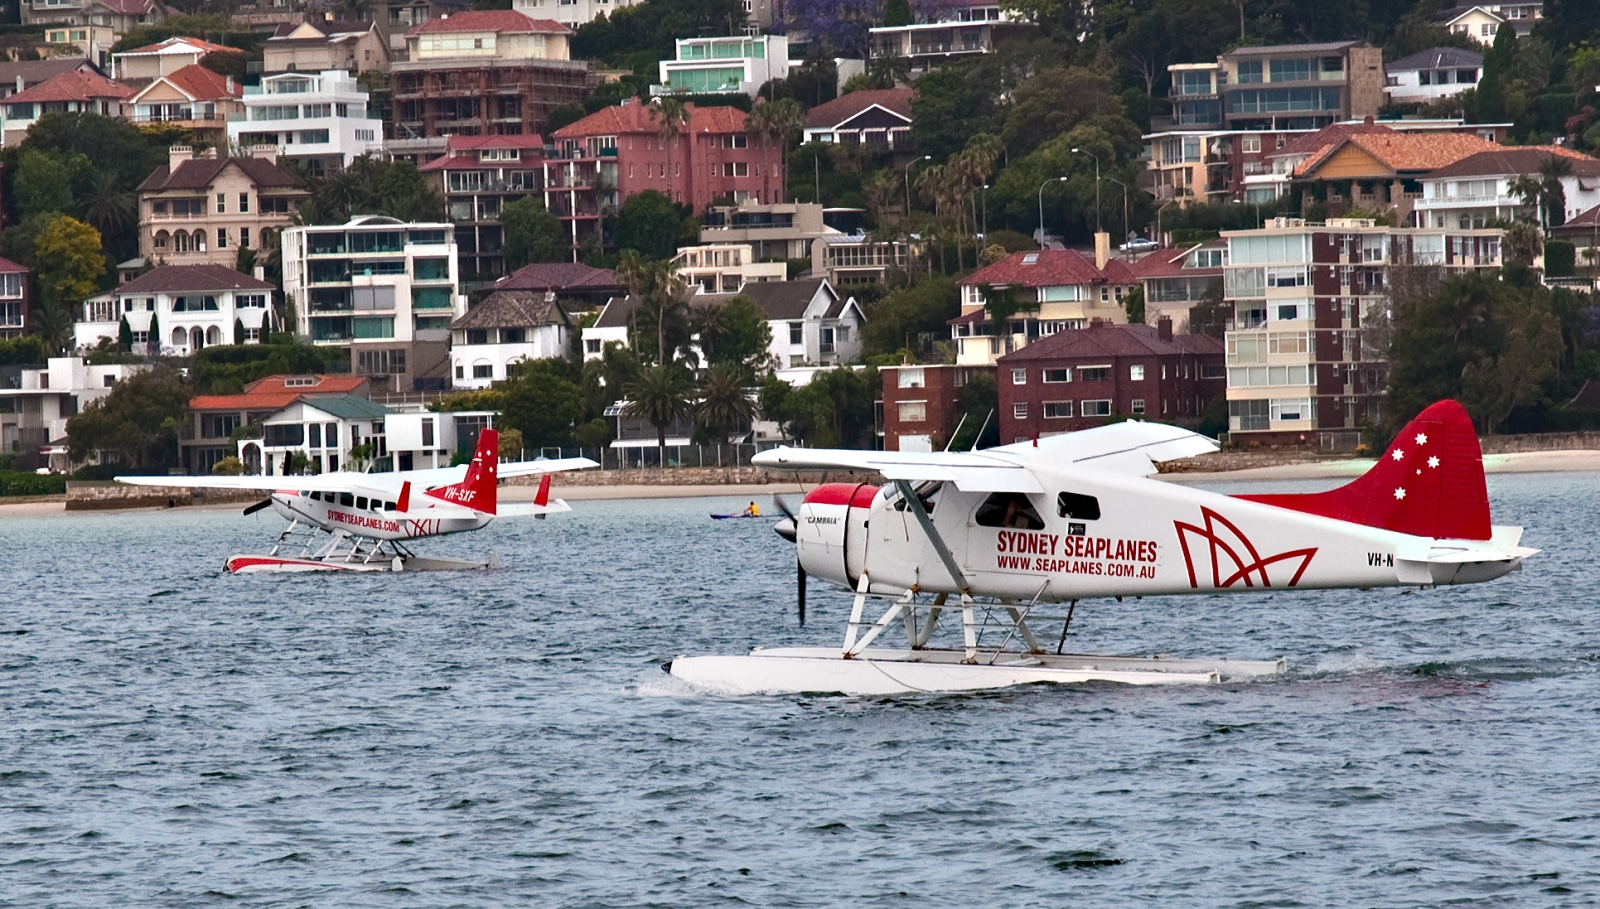 Compass CEO, 5 others die in seaplane crash in Sydney